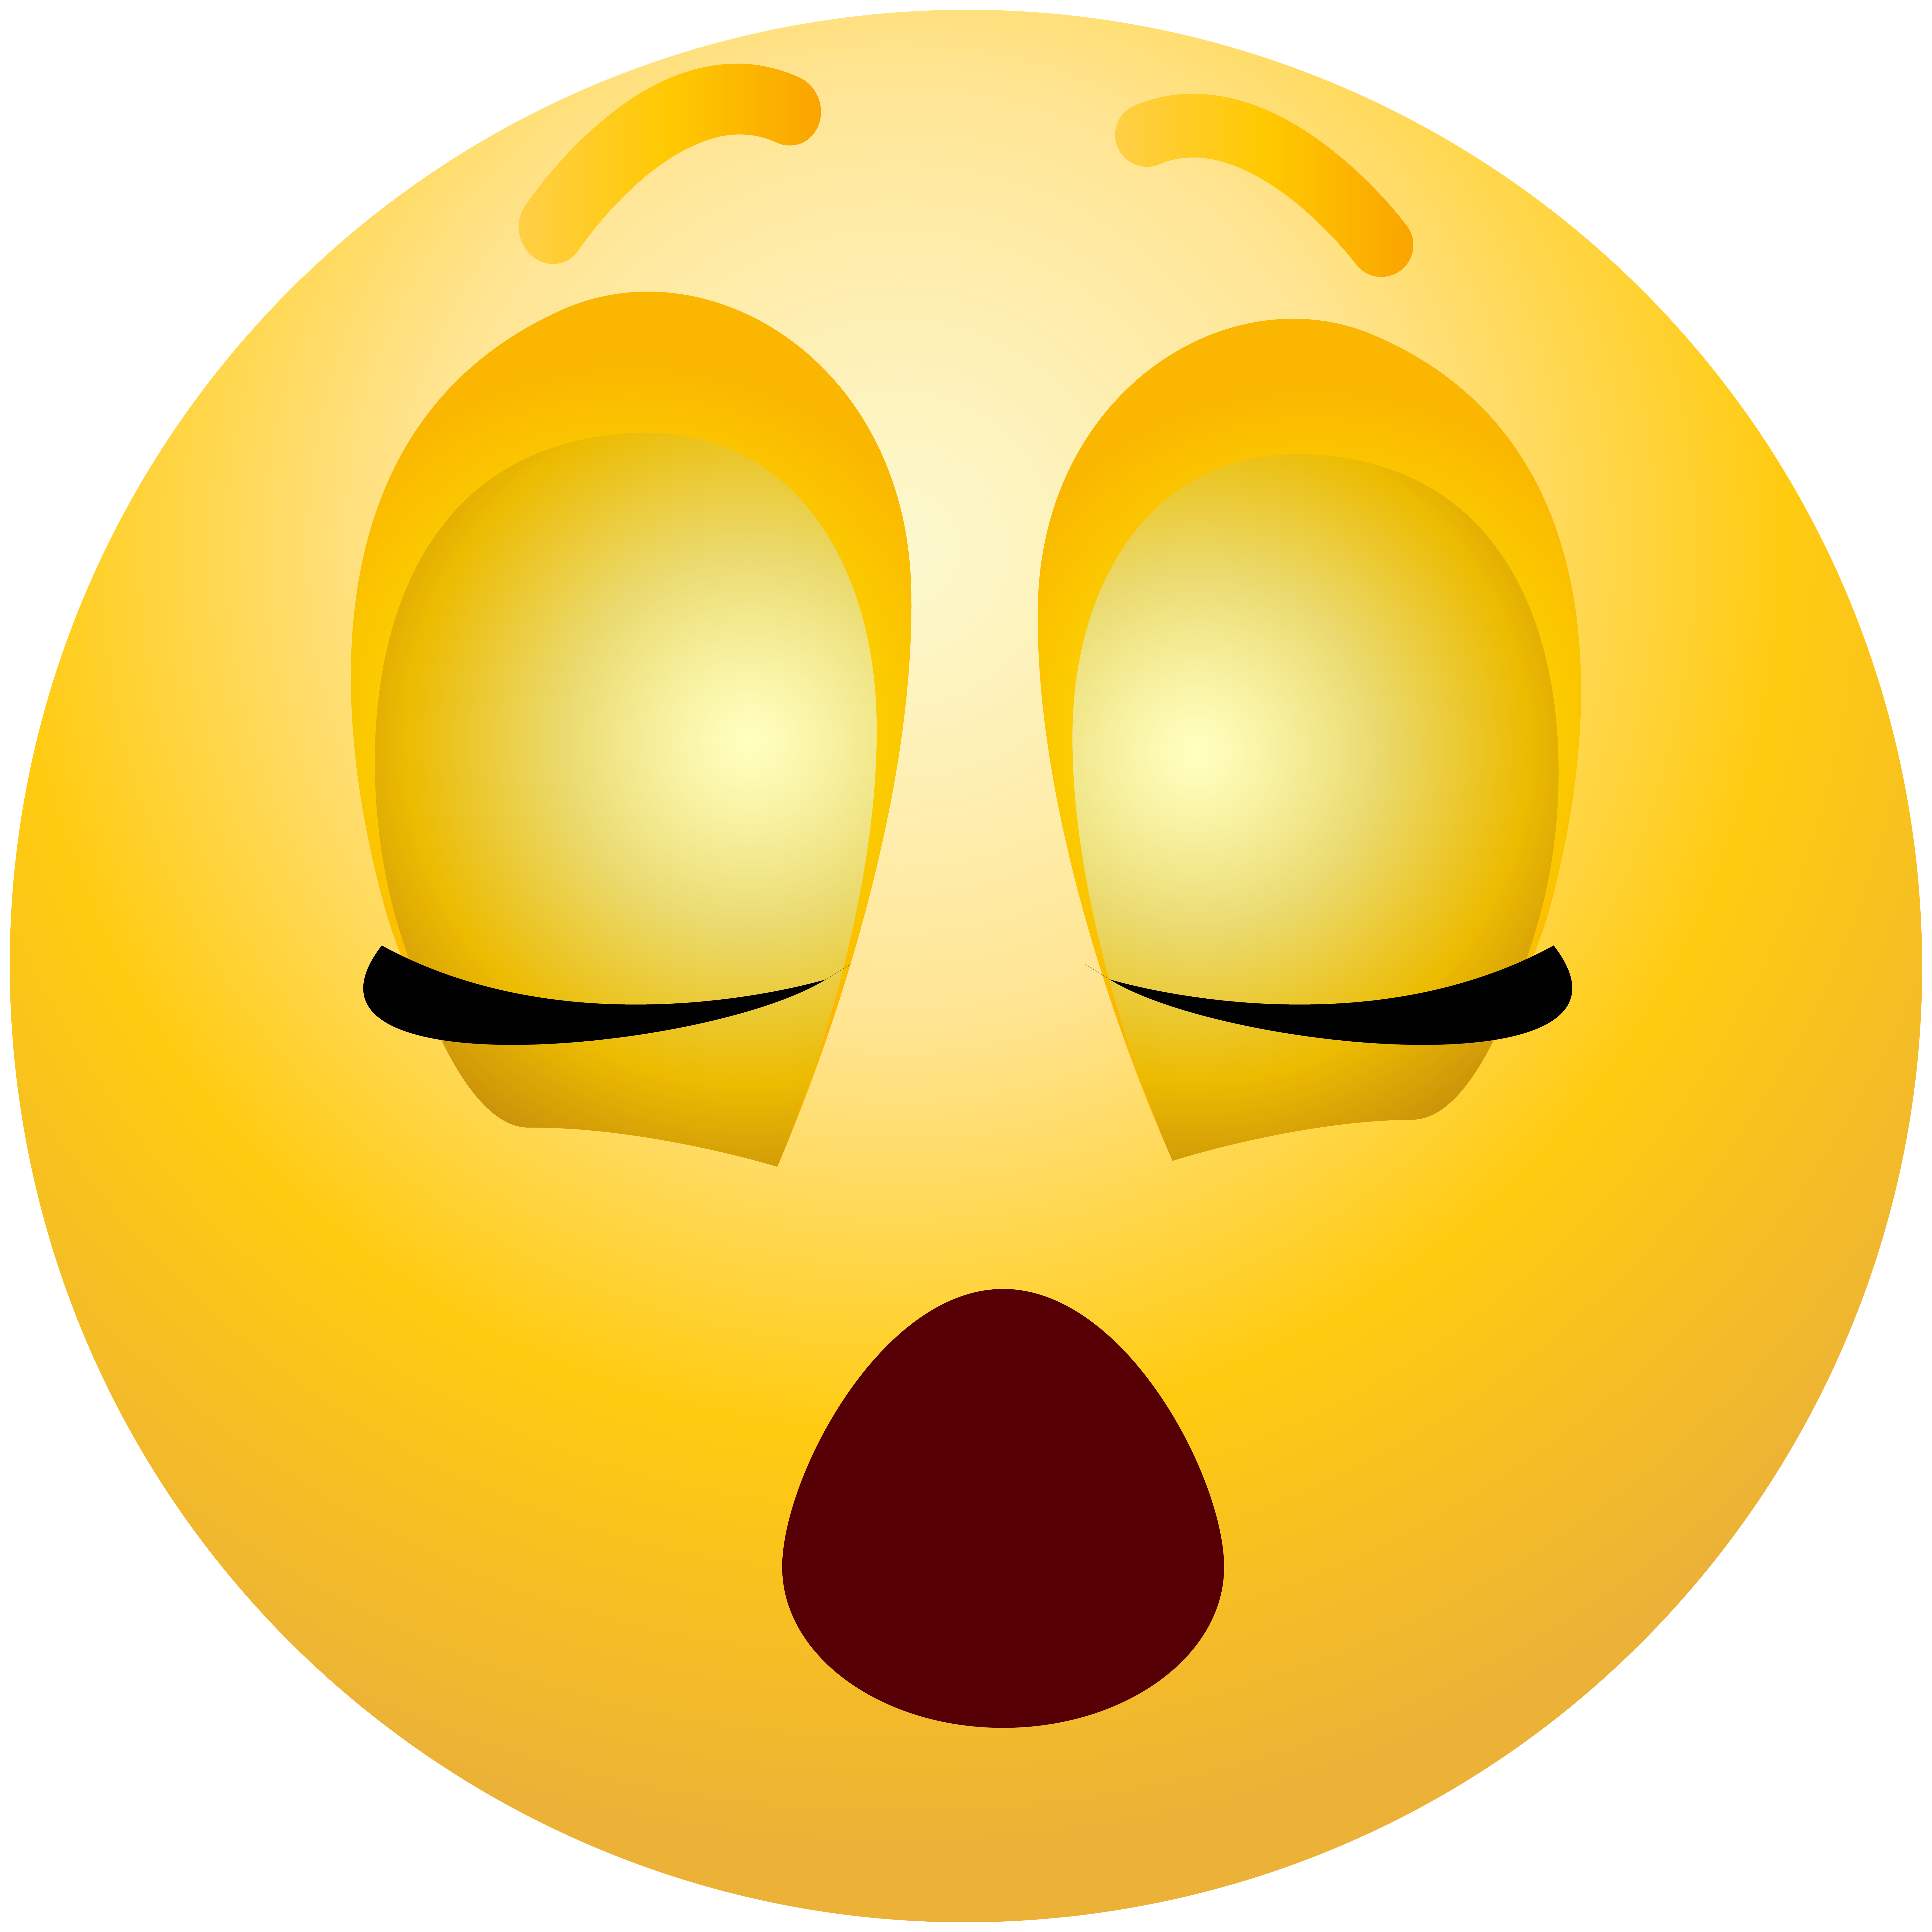 Planets clipart smiley. Sleeping emoticon png clip